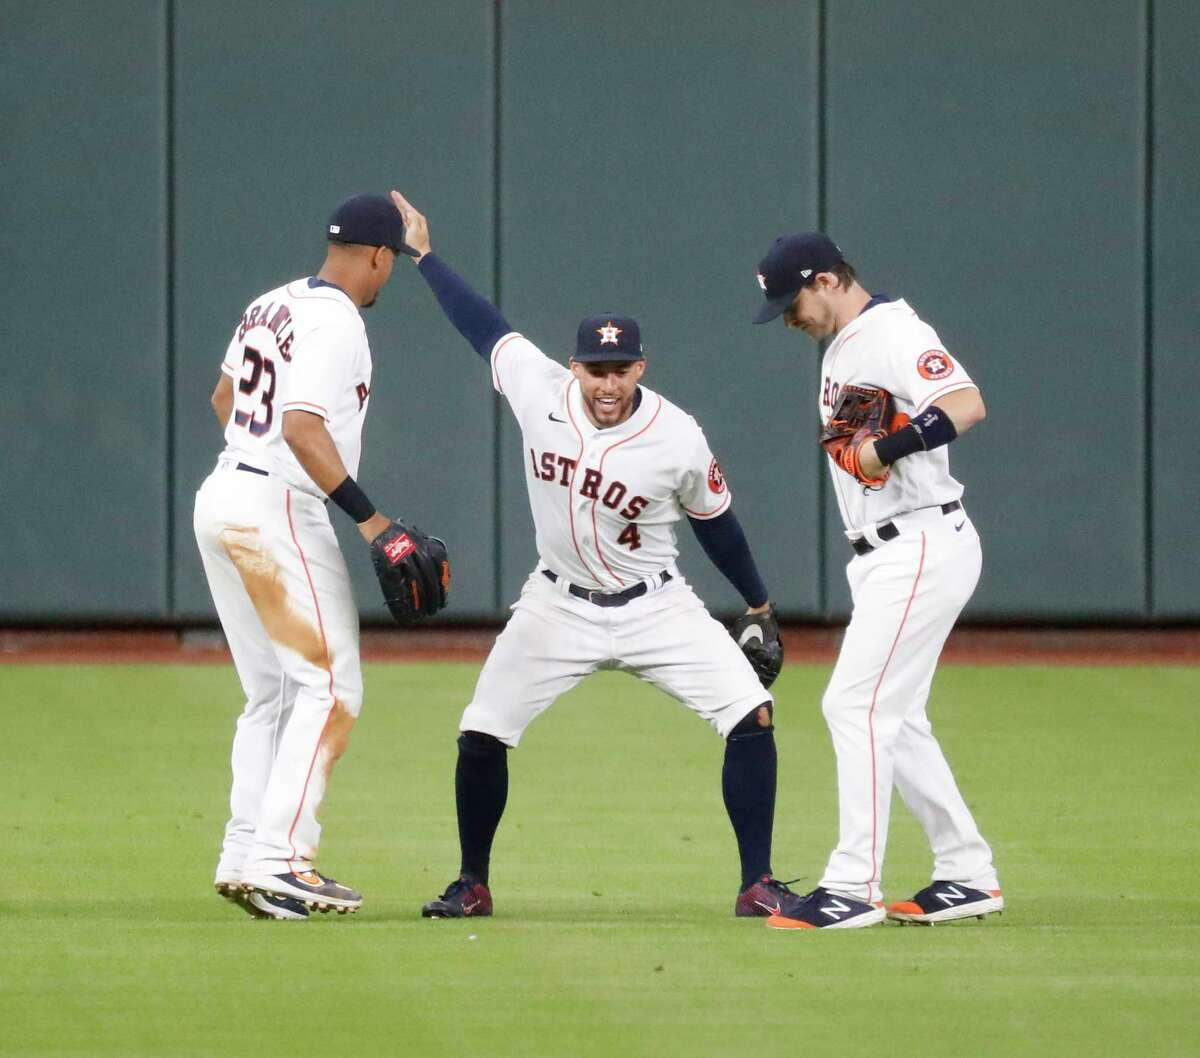 Houston Astros center fielder George Springer does a silly dance with Michael Brantley and Josh Reddick after the Astros beat the Seattle Mariners 7-2 during an MLB baseball game at Minute Maid Park, Saturday, July 25, 2020, in Houston.